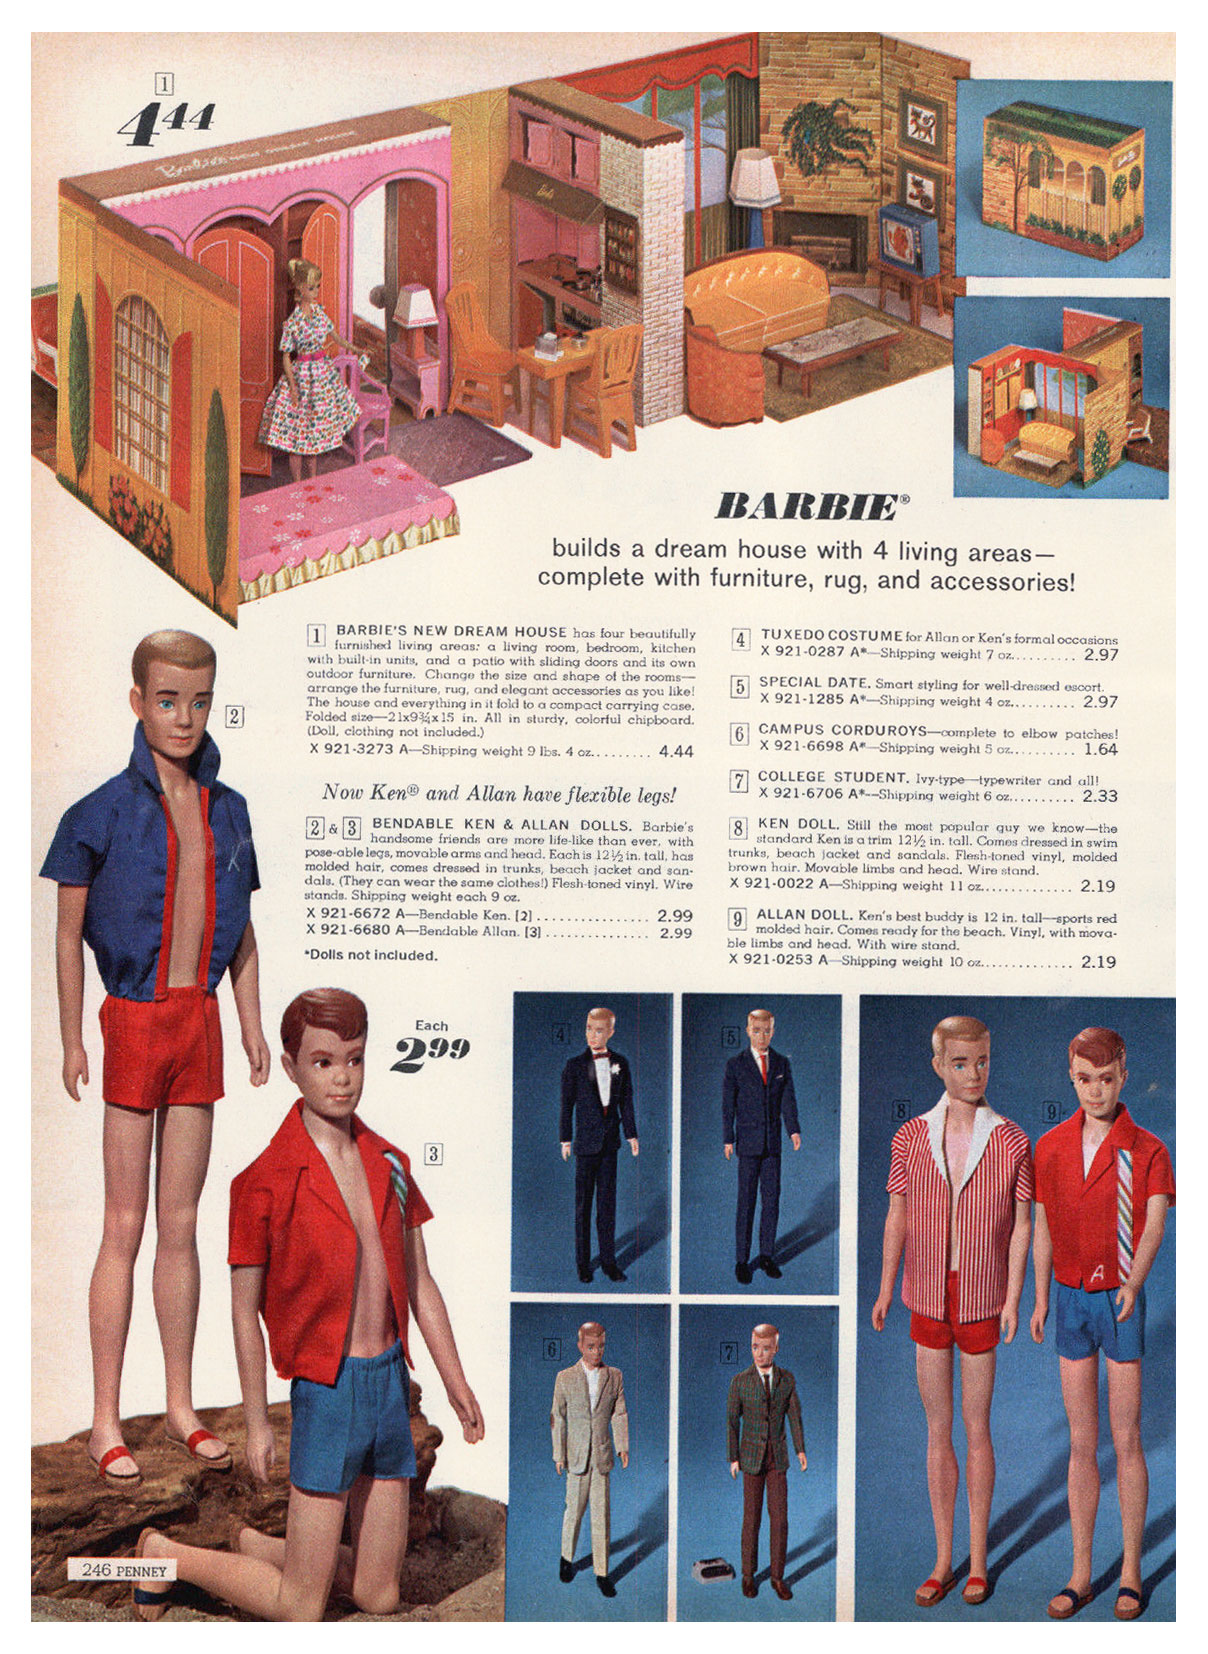 From 1965 Penneys Christmas catalogue